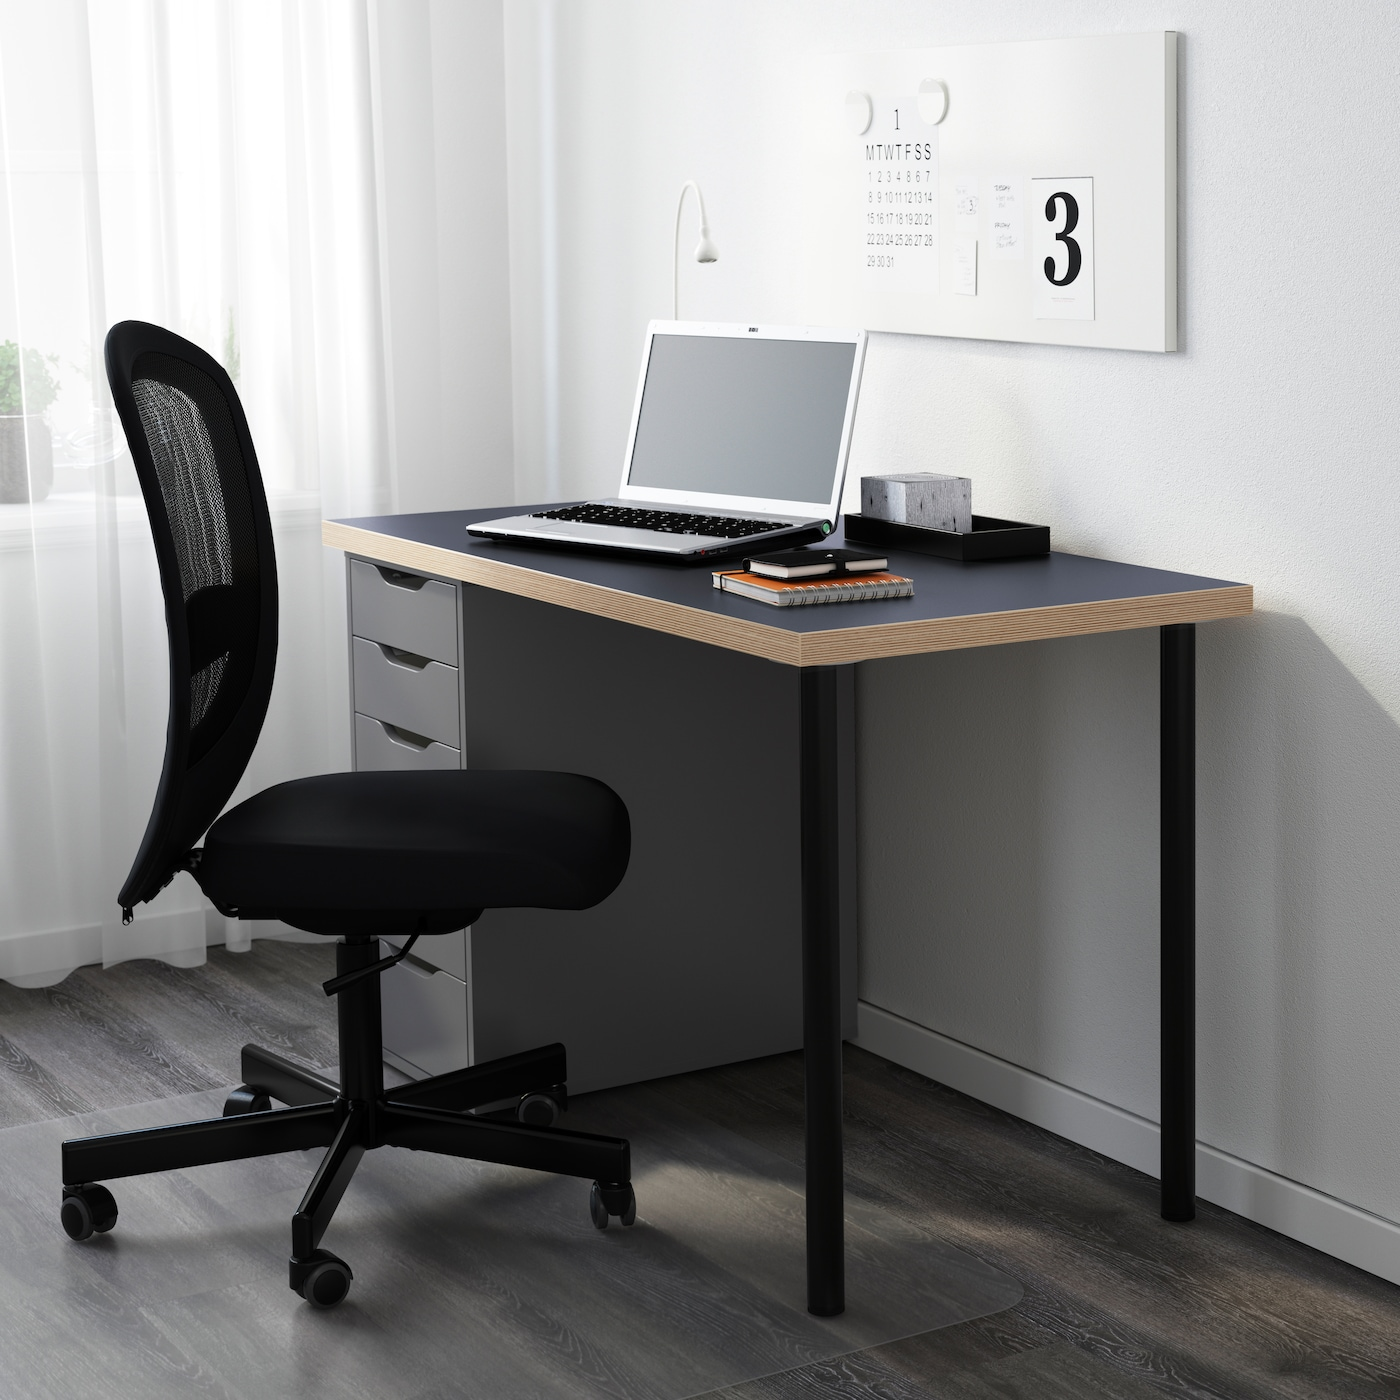 Image of: Office Chair Study Table Workspace Singapore Ikea